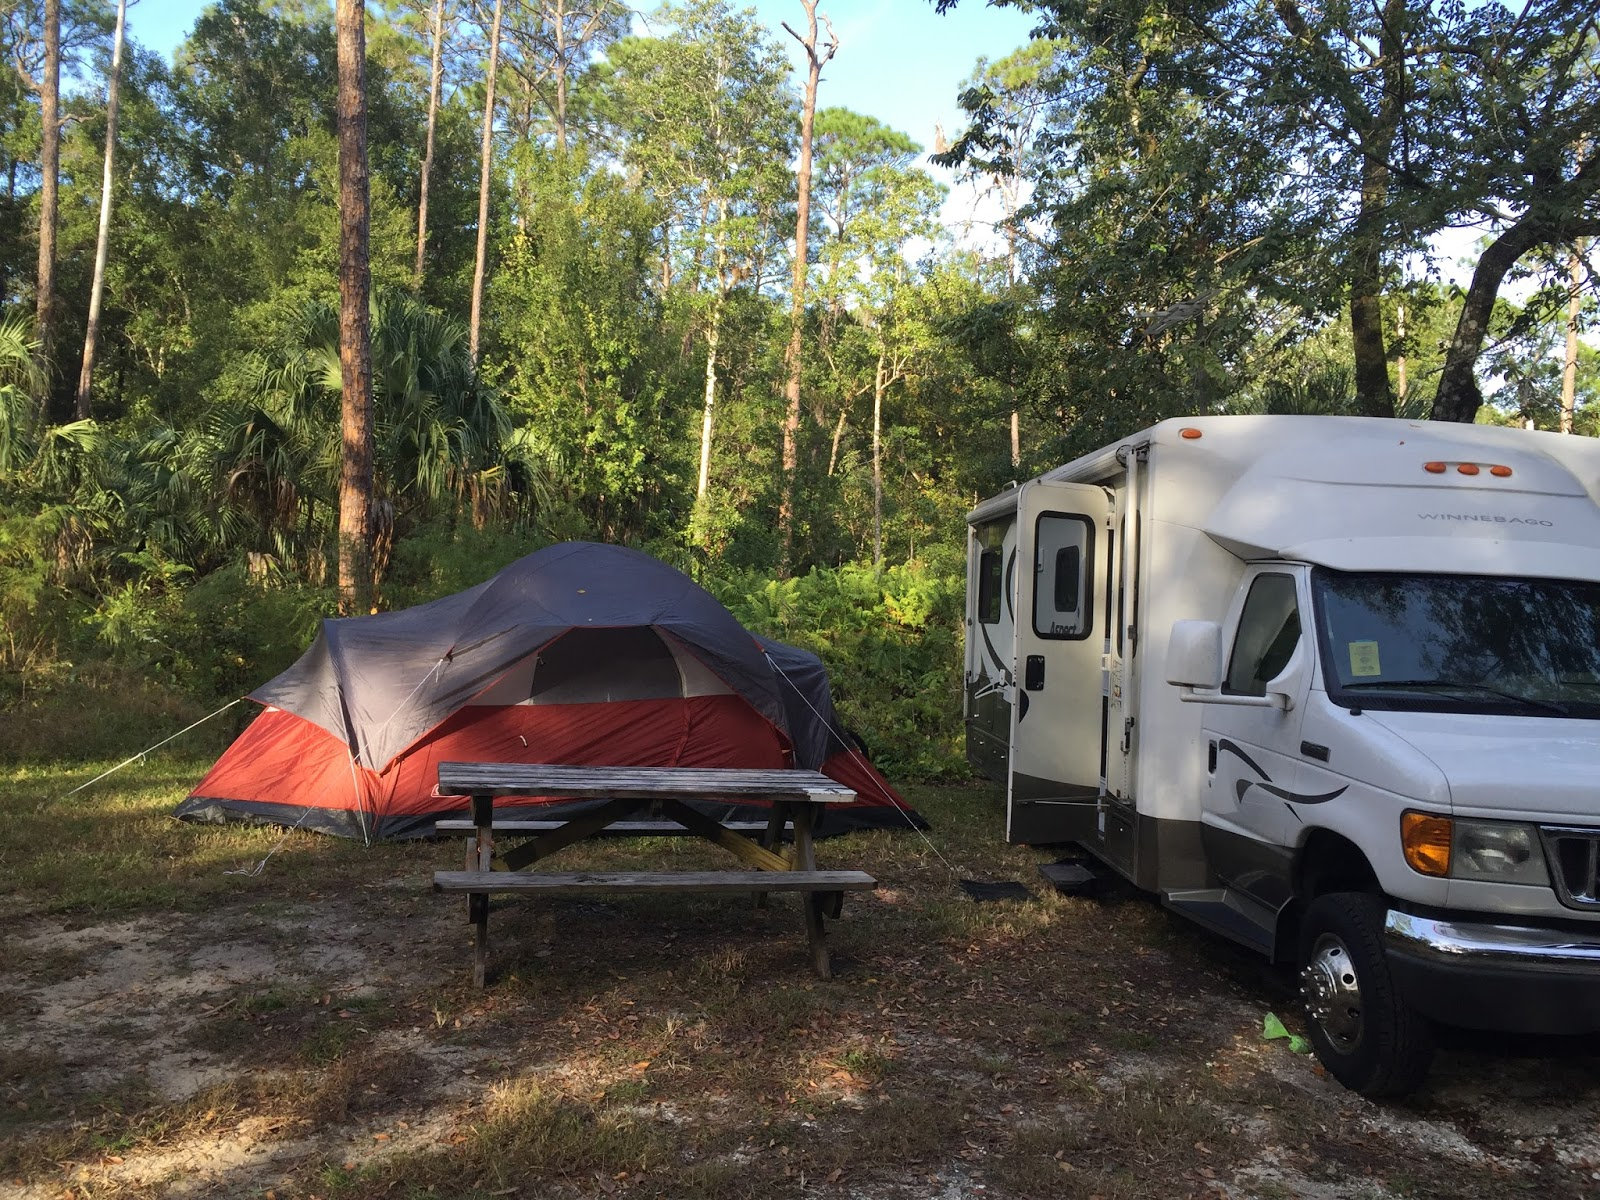 camping at highlands hammock state park in sebring florida our outdoor travel stories  camping at highlands hammock state      rh   ouroutdoorstories